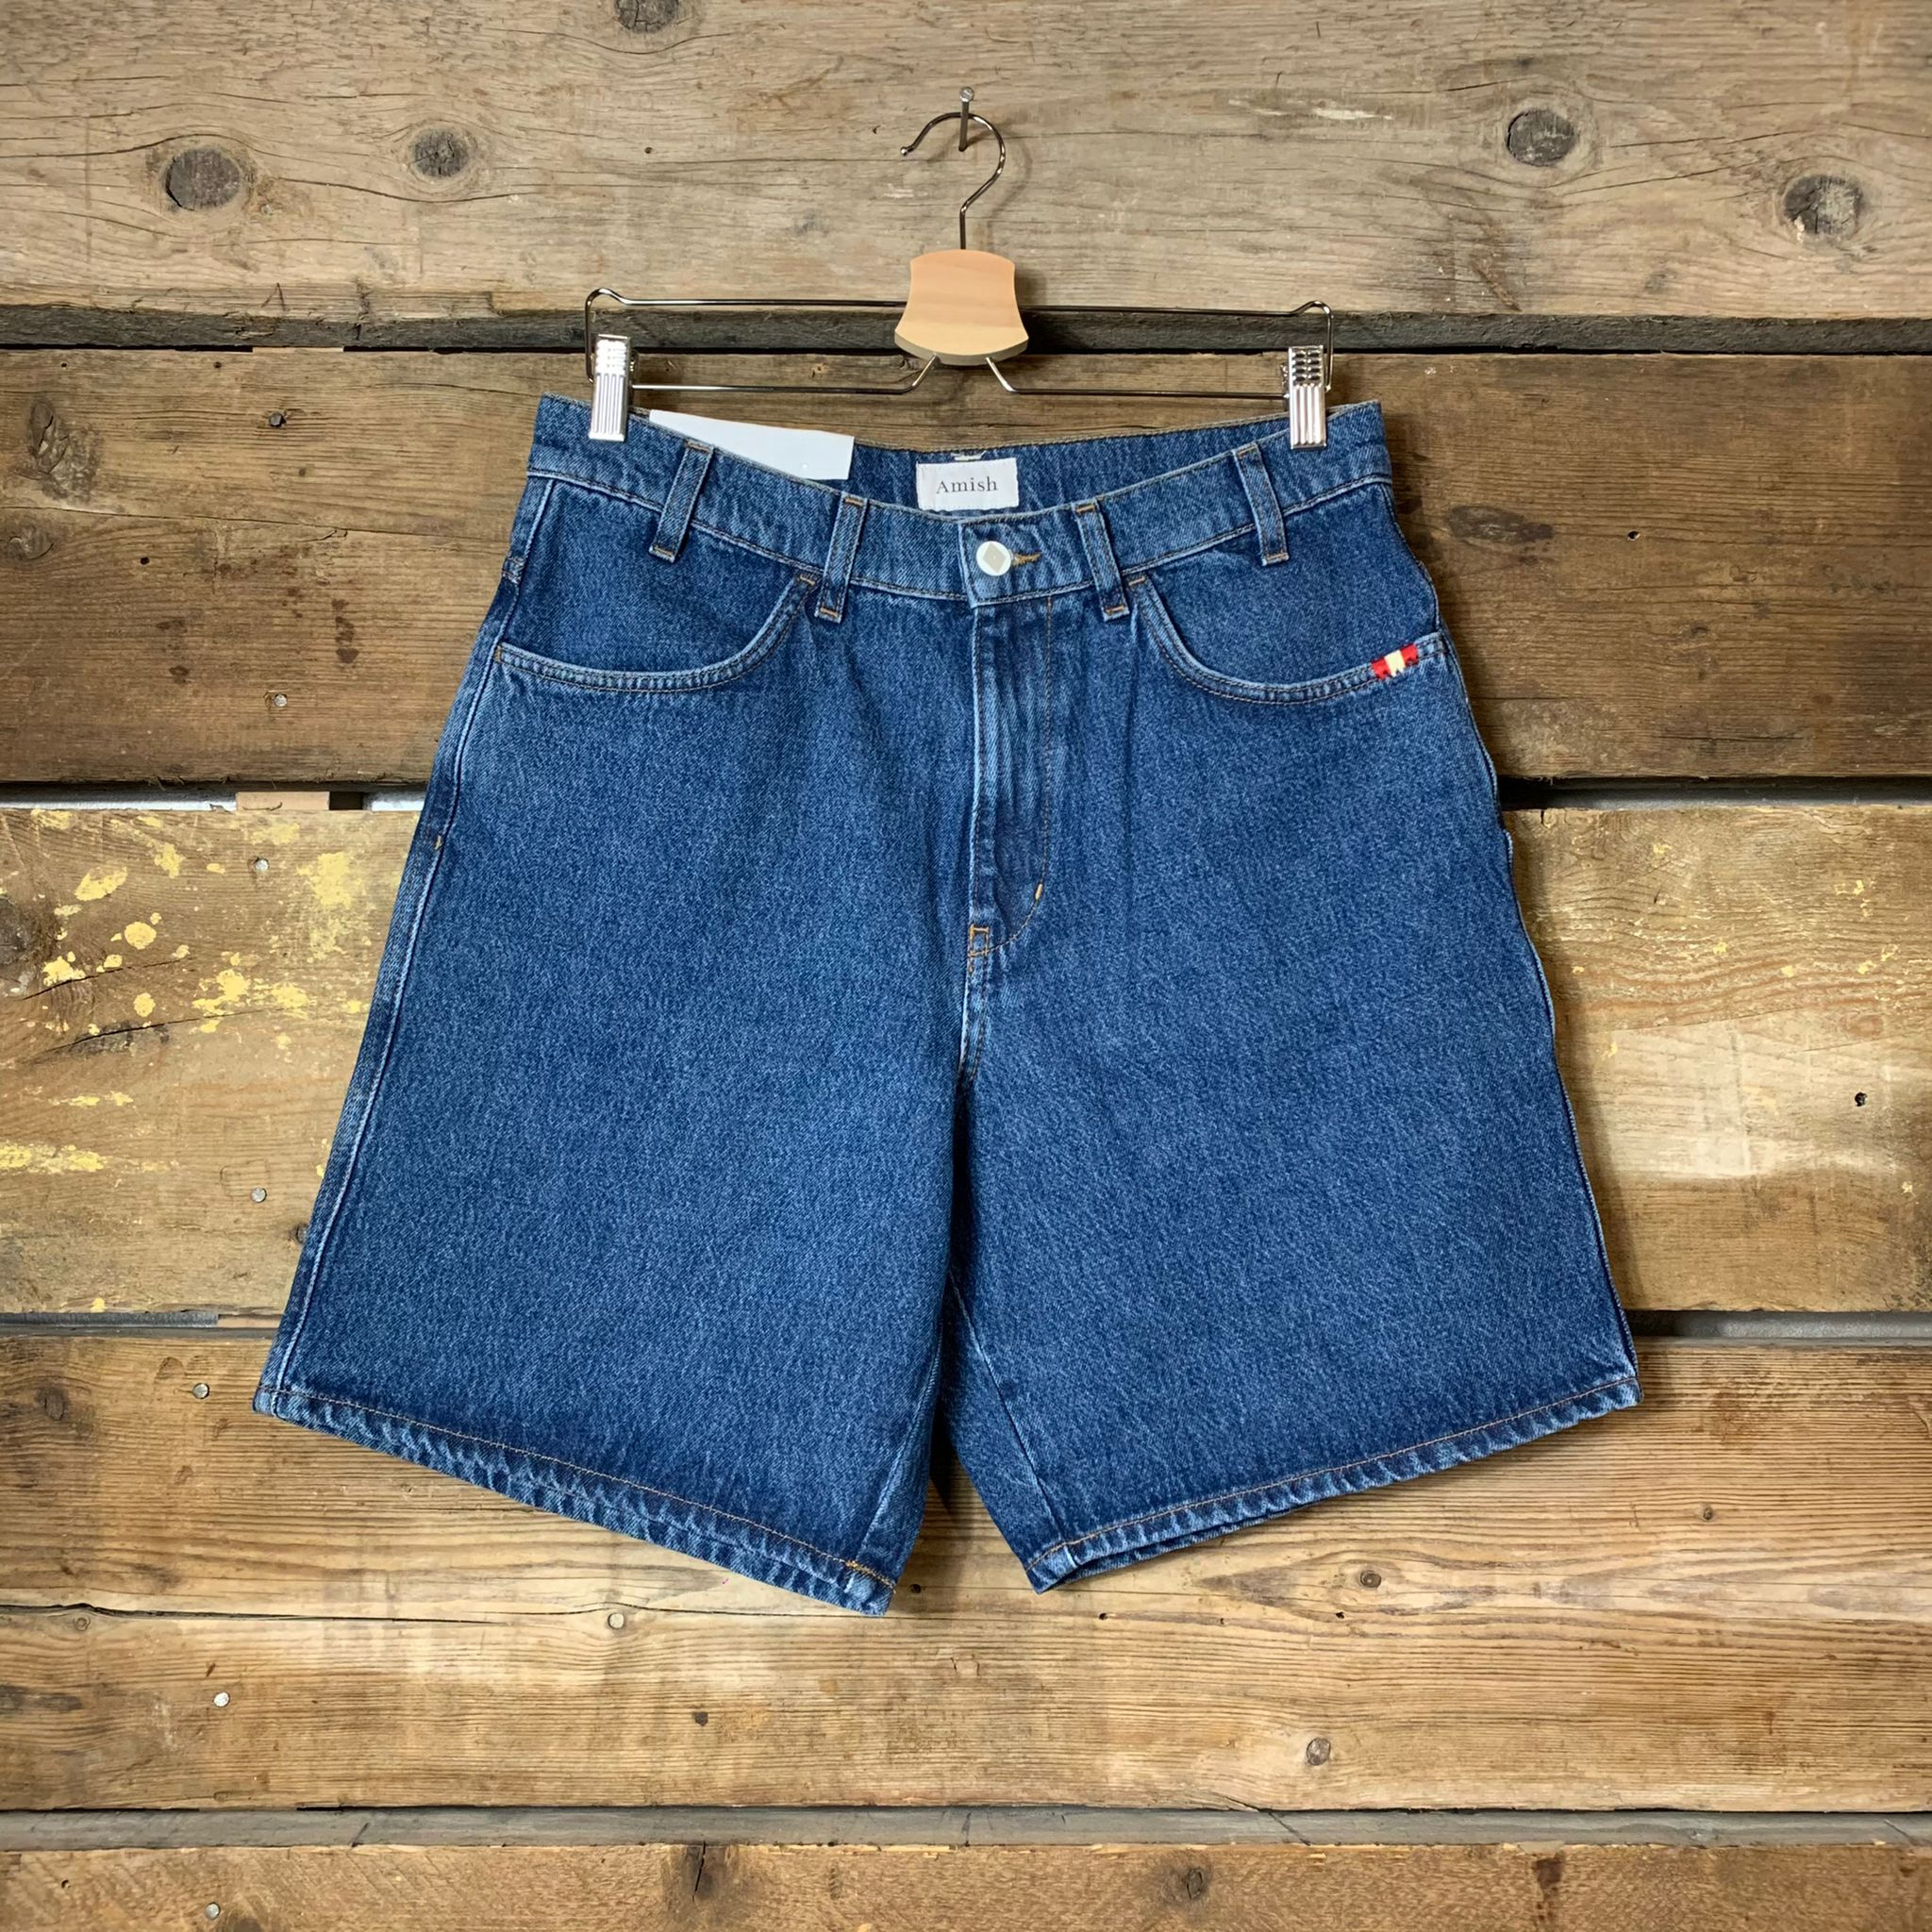 Jeans Amish Supplies Uomo Bermuda Bernie Blu Scuro